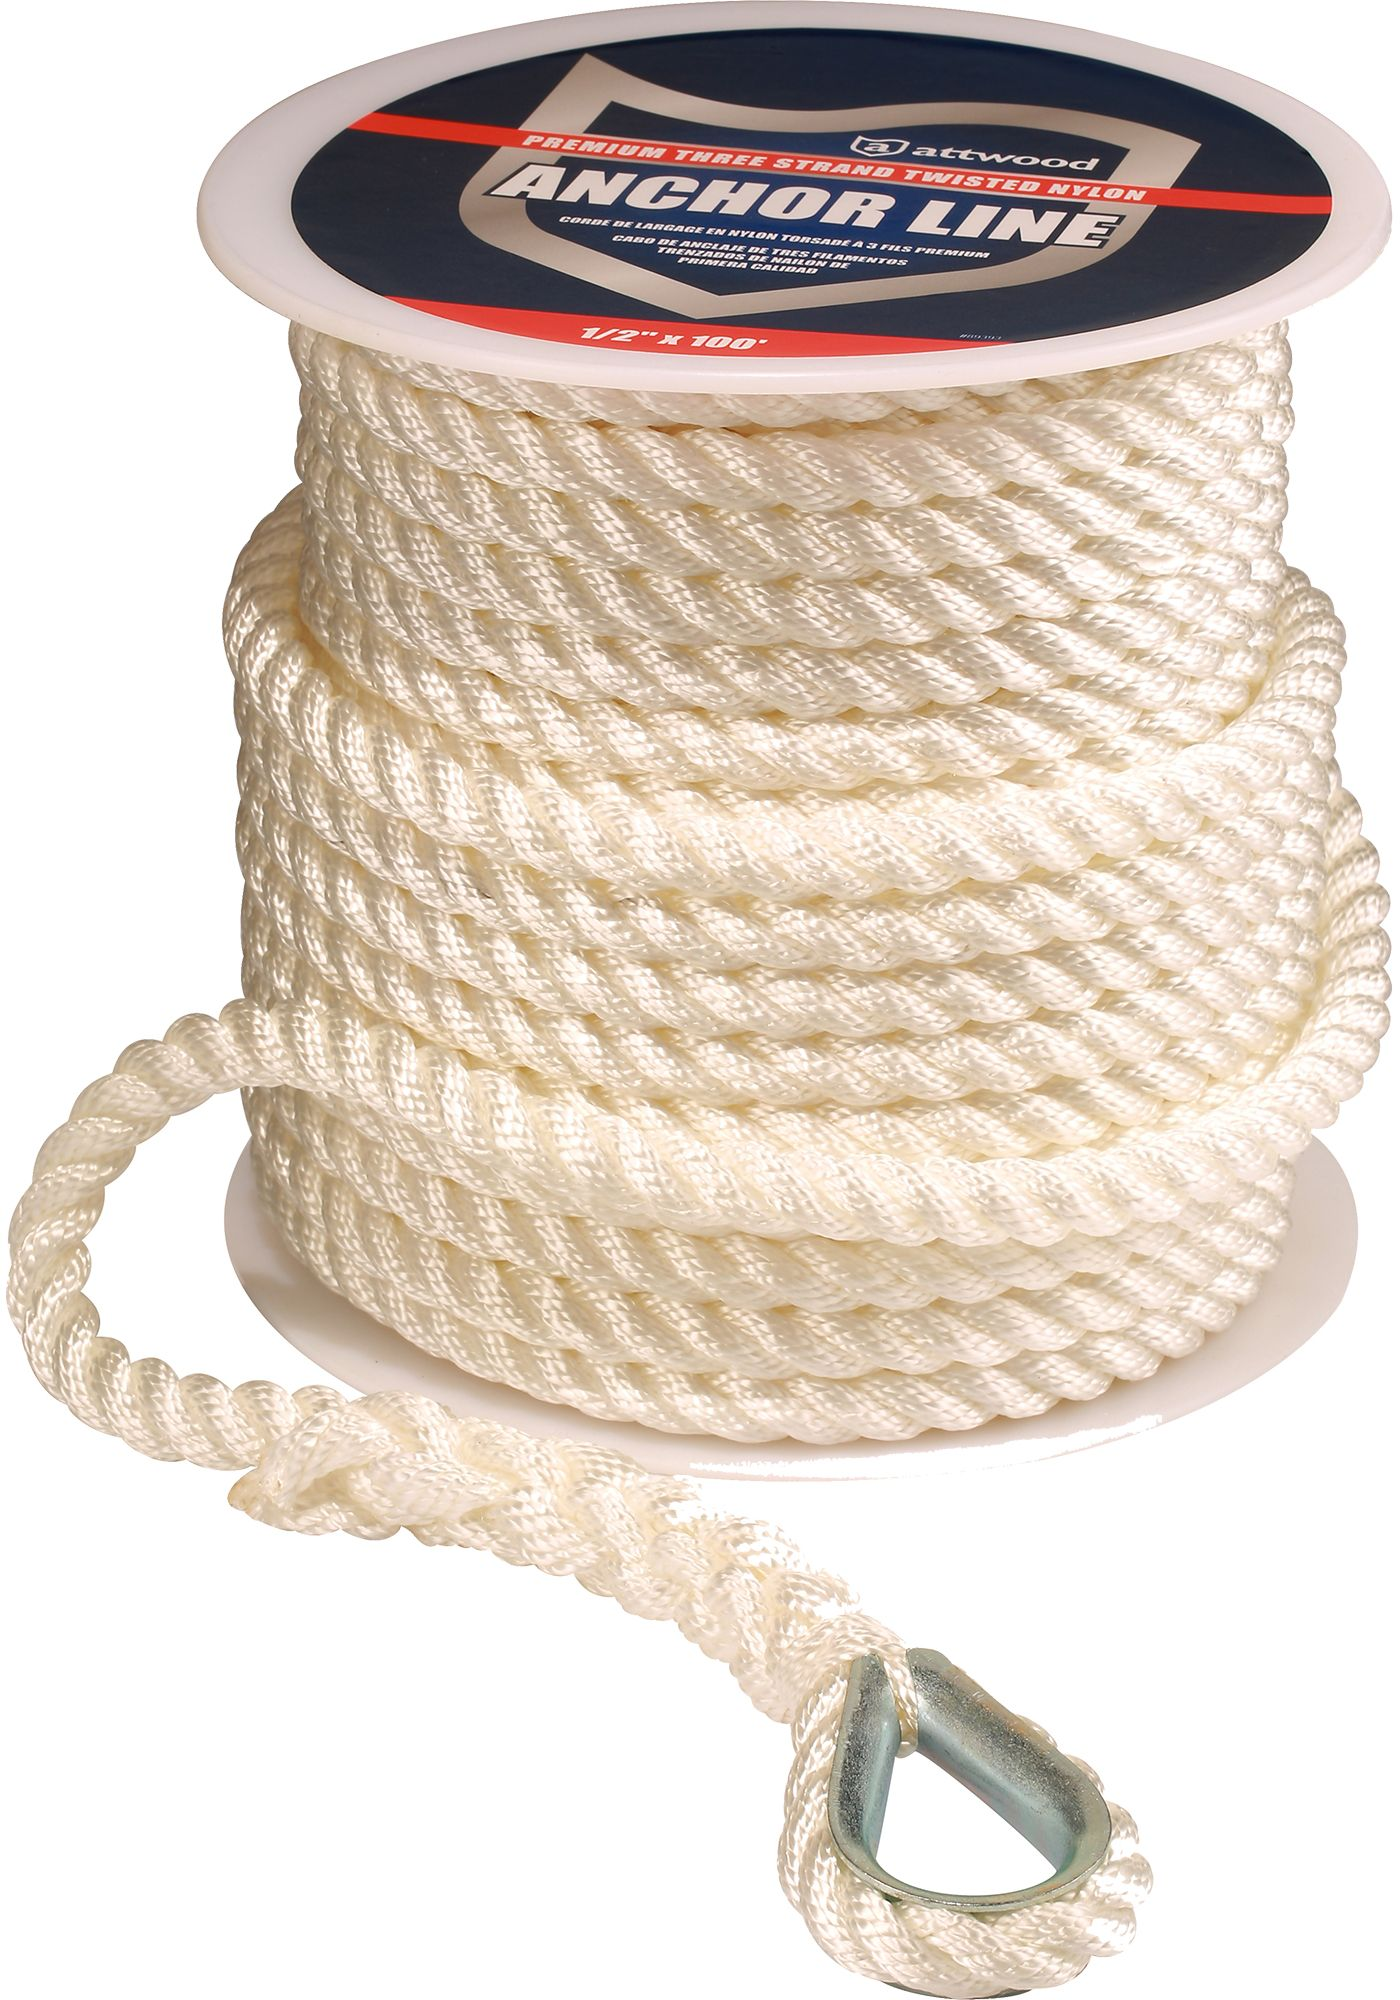 Attwood Premium Twisted Nylon Anchor Line with Thimble